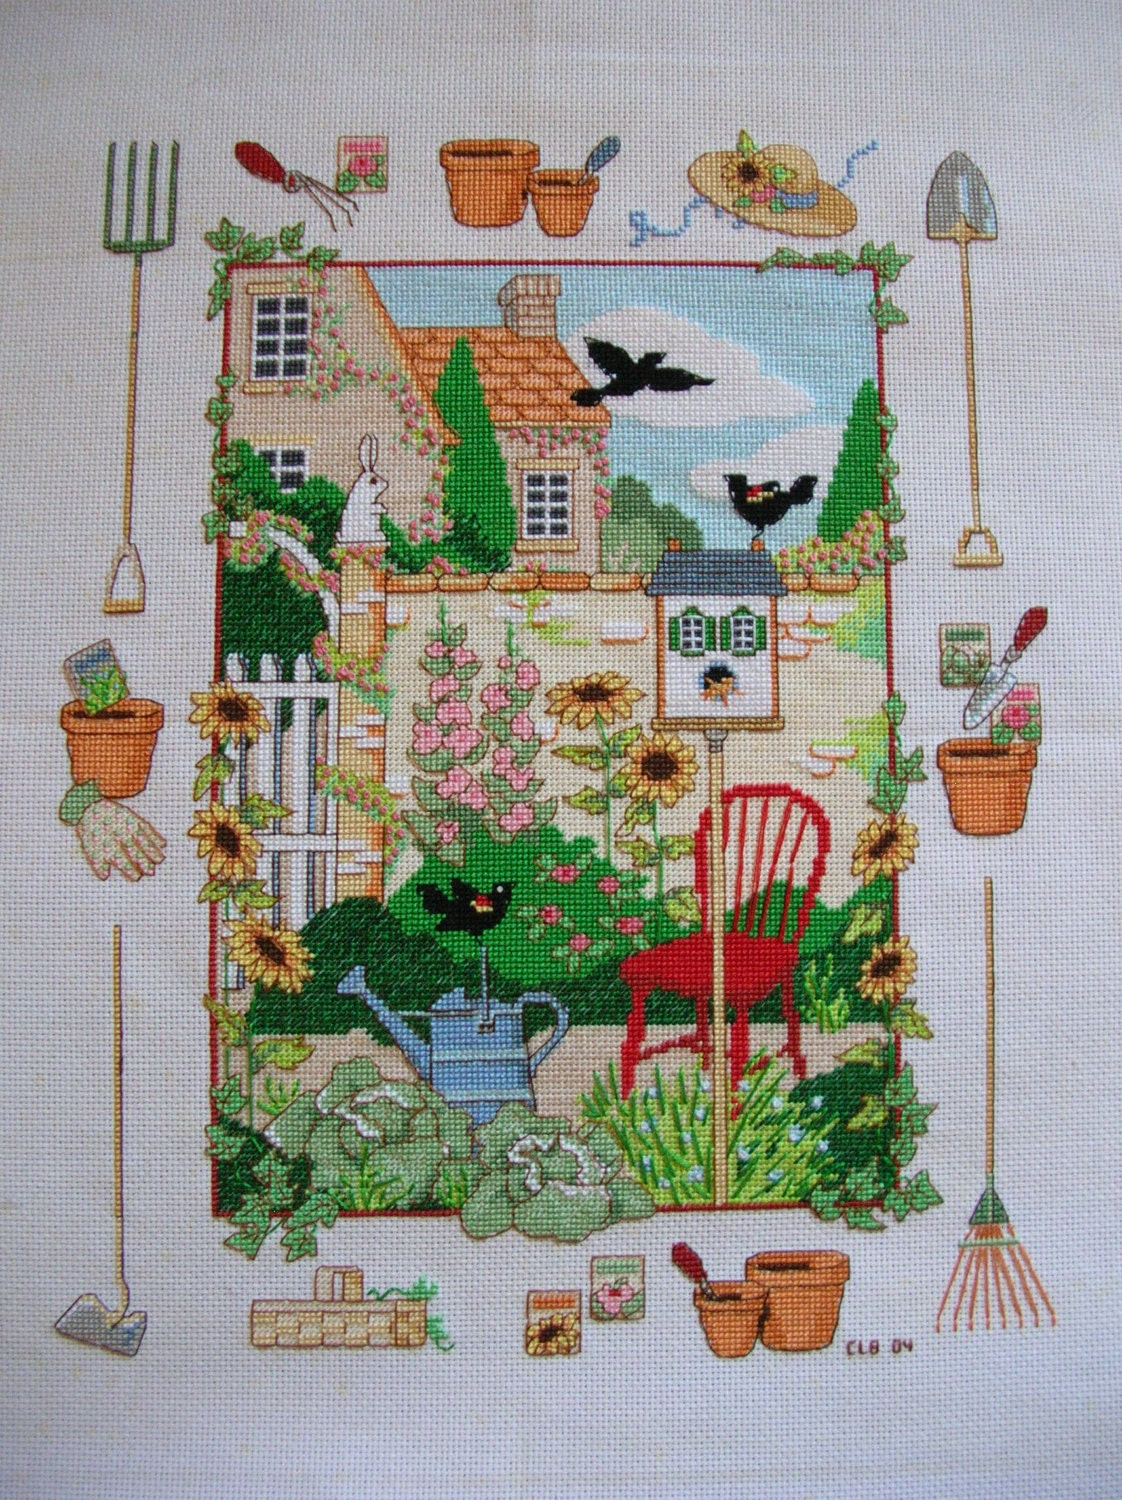 Cross Stitch Sampler  Gardening Theme  Completed and Ready to Frame - LittlestSister